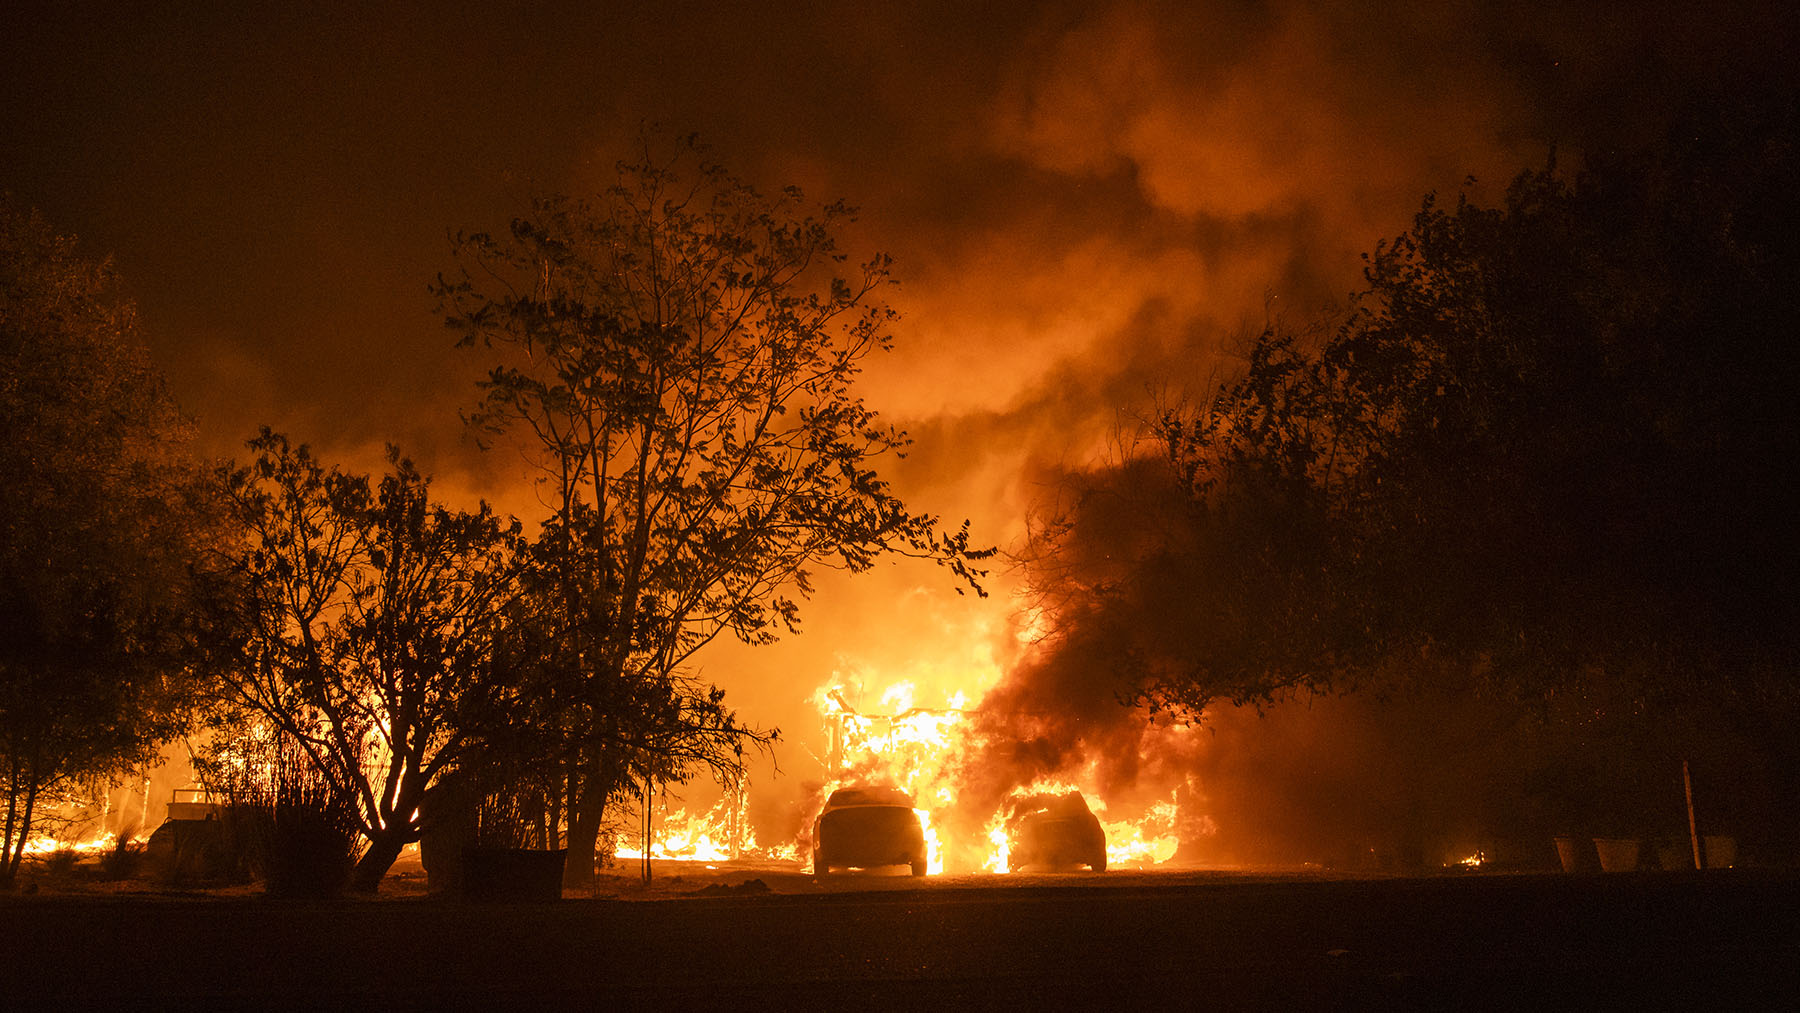 Vehicles catch fire in front of a burning home along Peaceful Glen Road during the Hennessy fire in Solano County, California, on Wednesday, Aug. 19, 2020. More Northern Californians were chased out of their homes by lightning-sparked wildfires that burned out of control in several counties amid a punishing heat wave that pushed temperatures into the triple digits. (Philip Pacheco/Bloomberg via Getty Images)